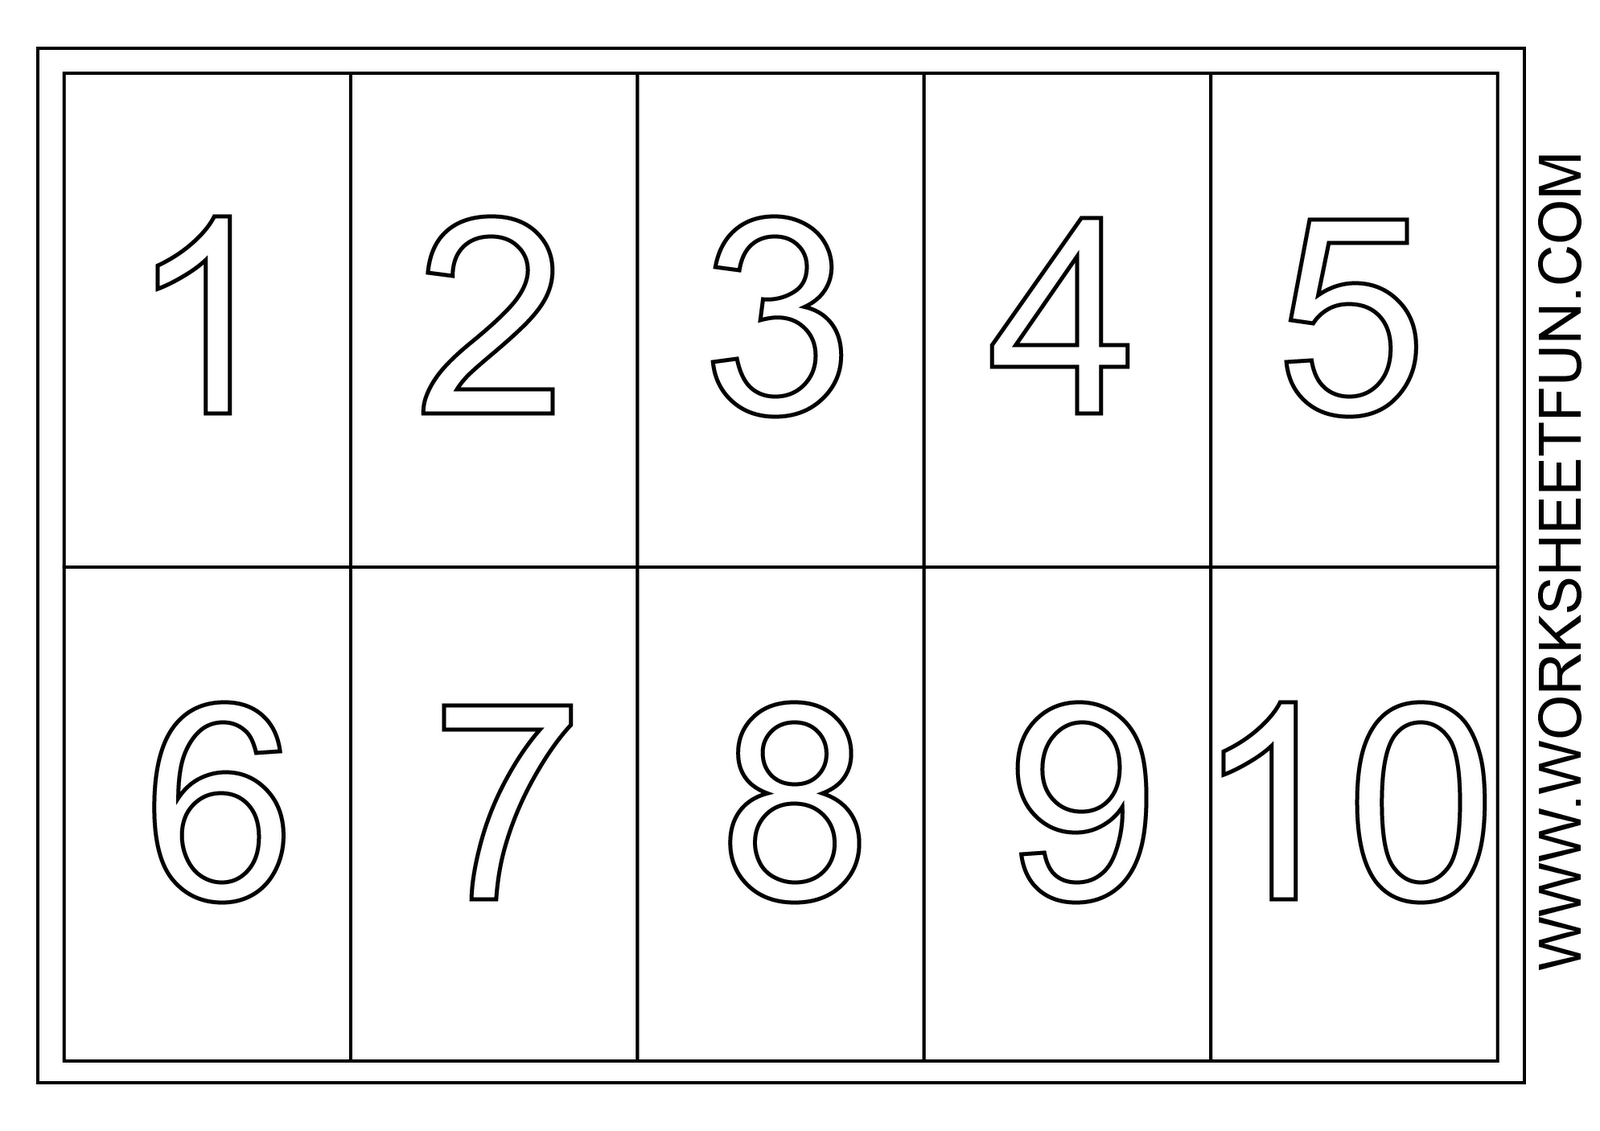 Preschool numbers clipart number 1 with dot.